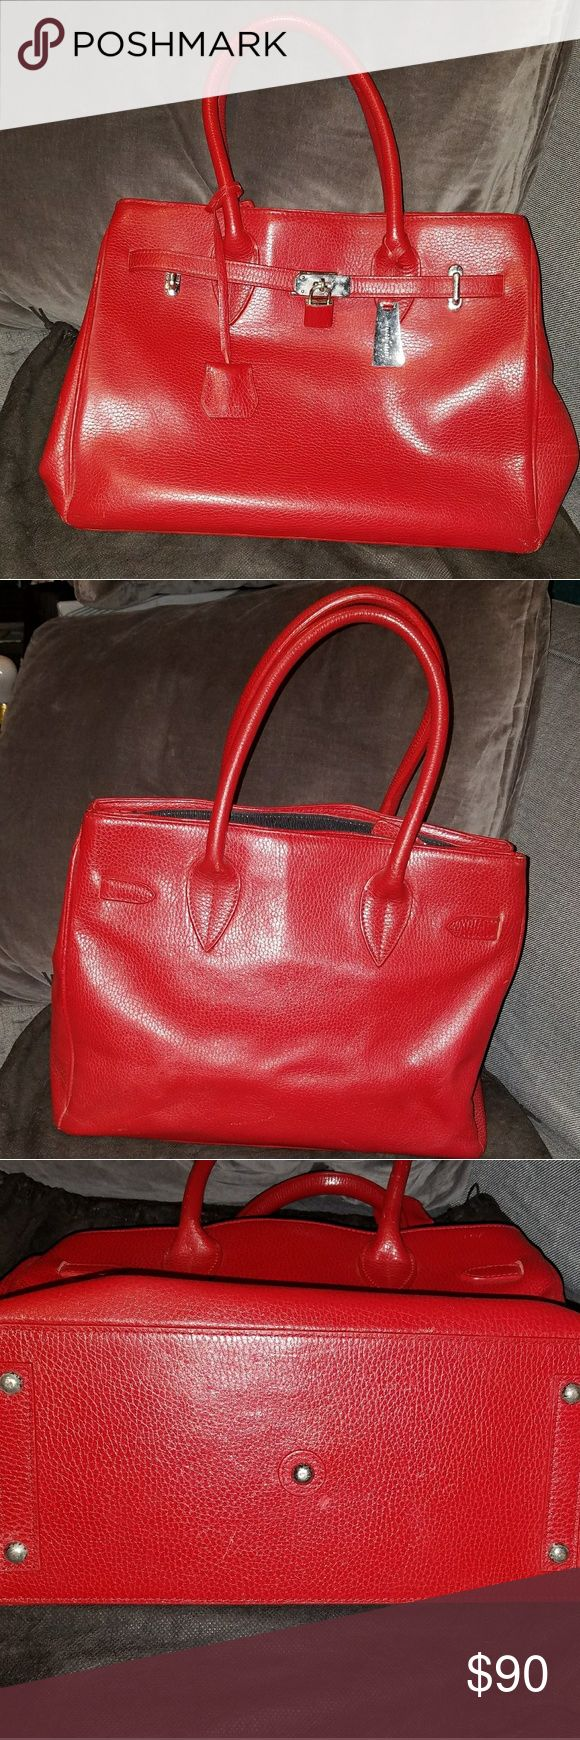 """Jasper Conran Red Leather """"Birkin Style"""" bag Red pebbled leather handbag. Purchased at Debenham's 15 years ago and gently used. Jasper Conran Bags Satchels"""